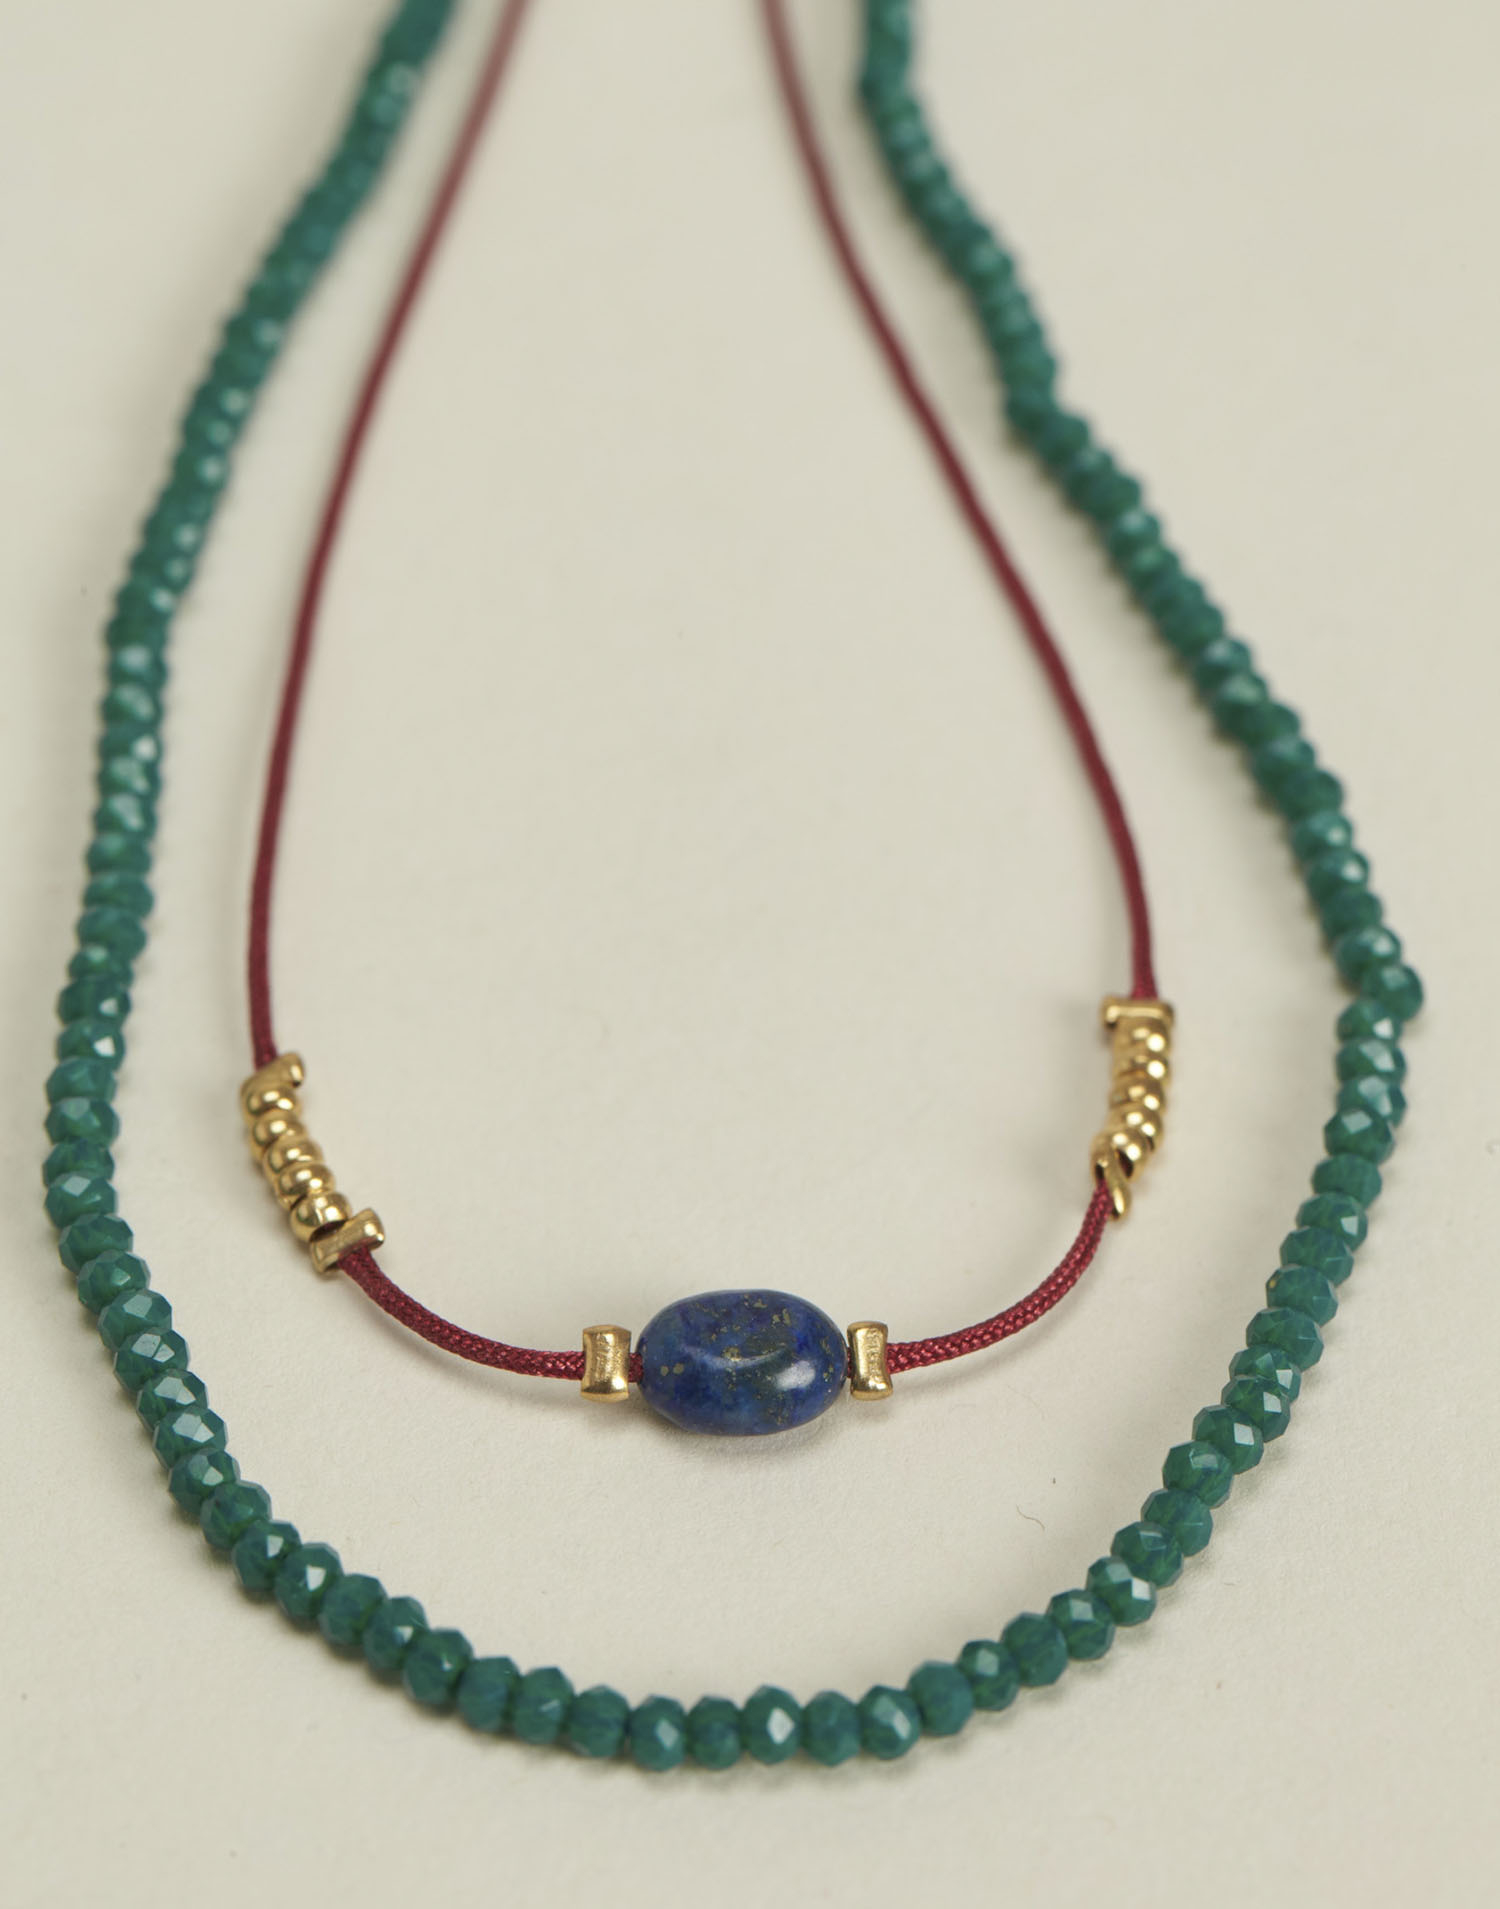 Double beads and thread necklace